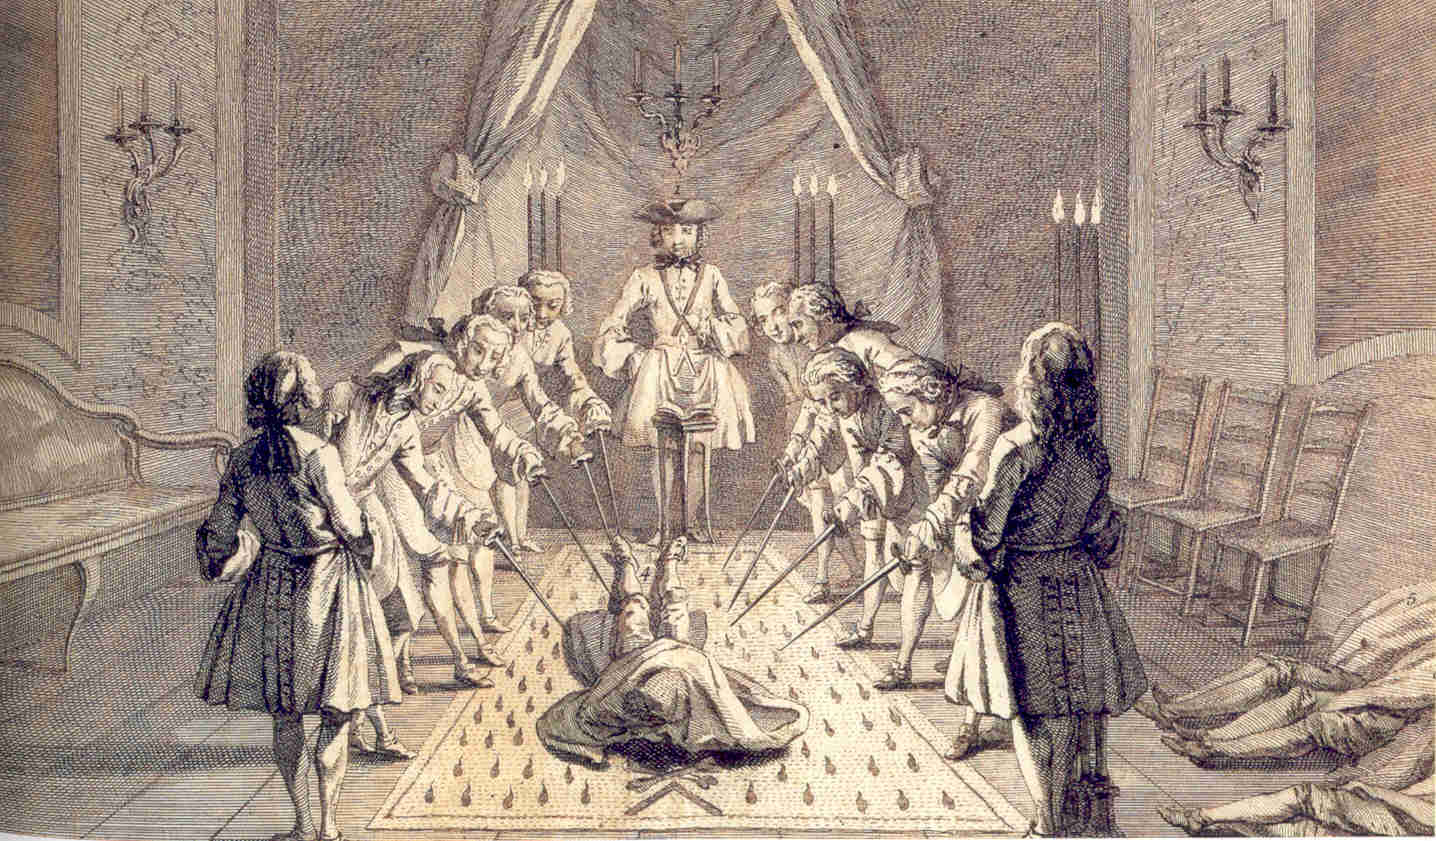 Freemasonry- benign oddity or the seed of corruption? | this fragile tent